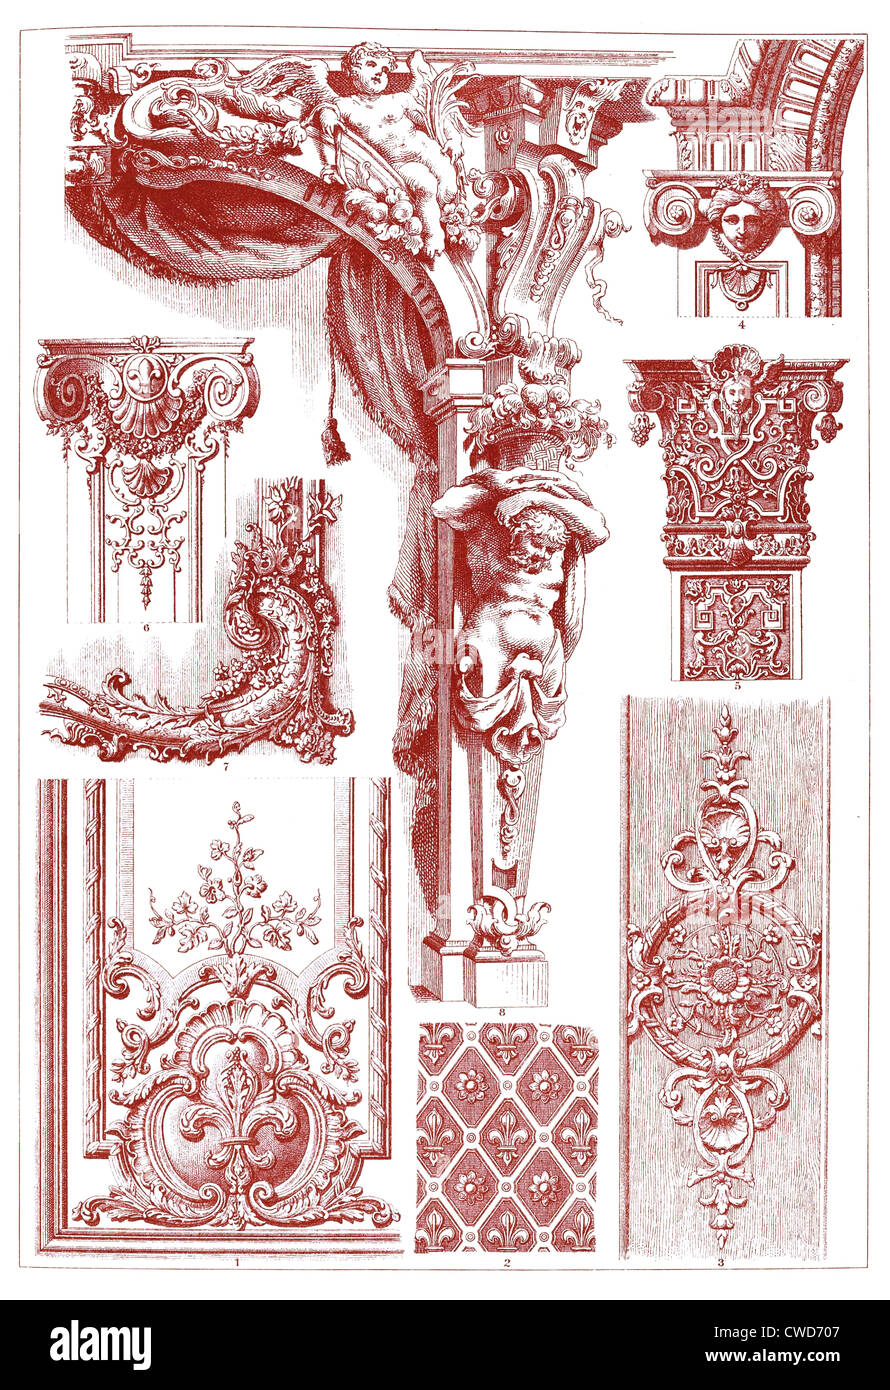 XVII. and XVIII. Century sculptural ornaments - Stock Image